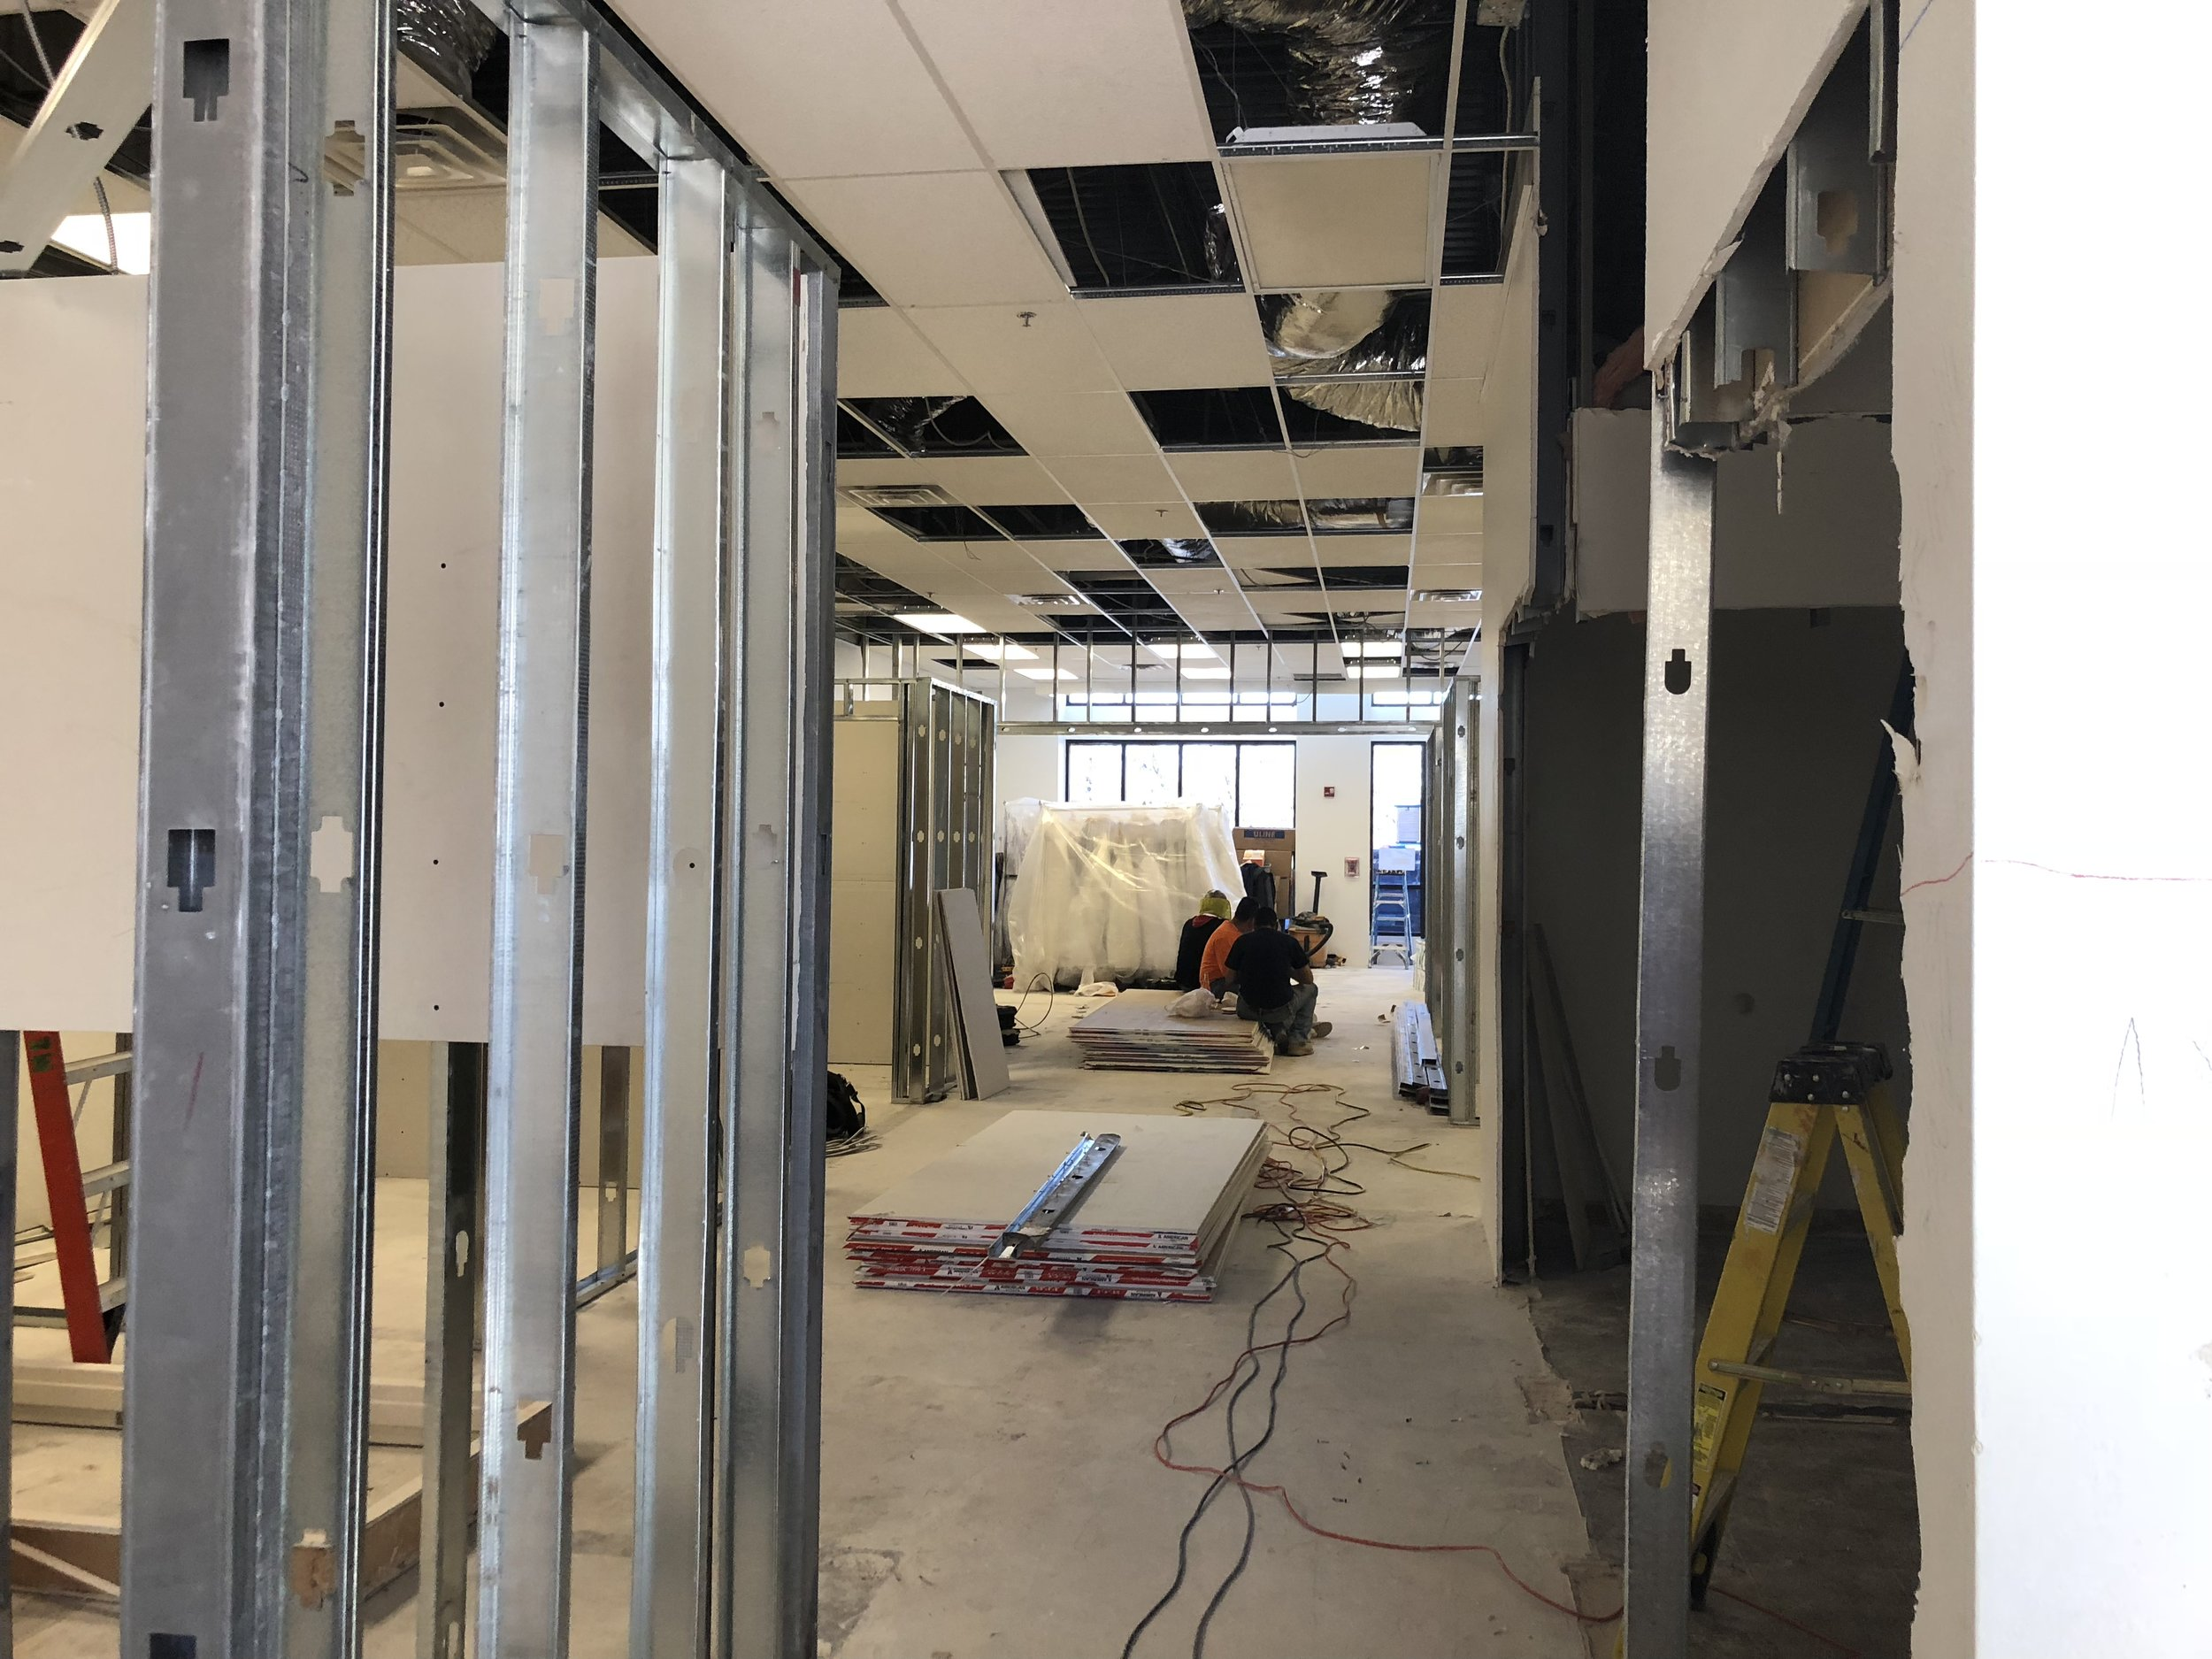 remodeling our bridal shop in Albuquerque